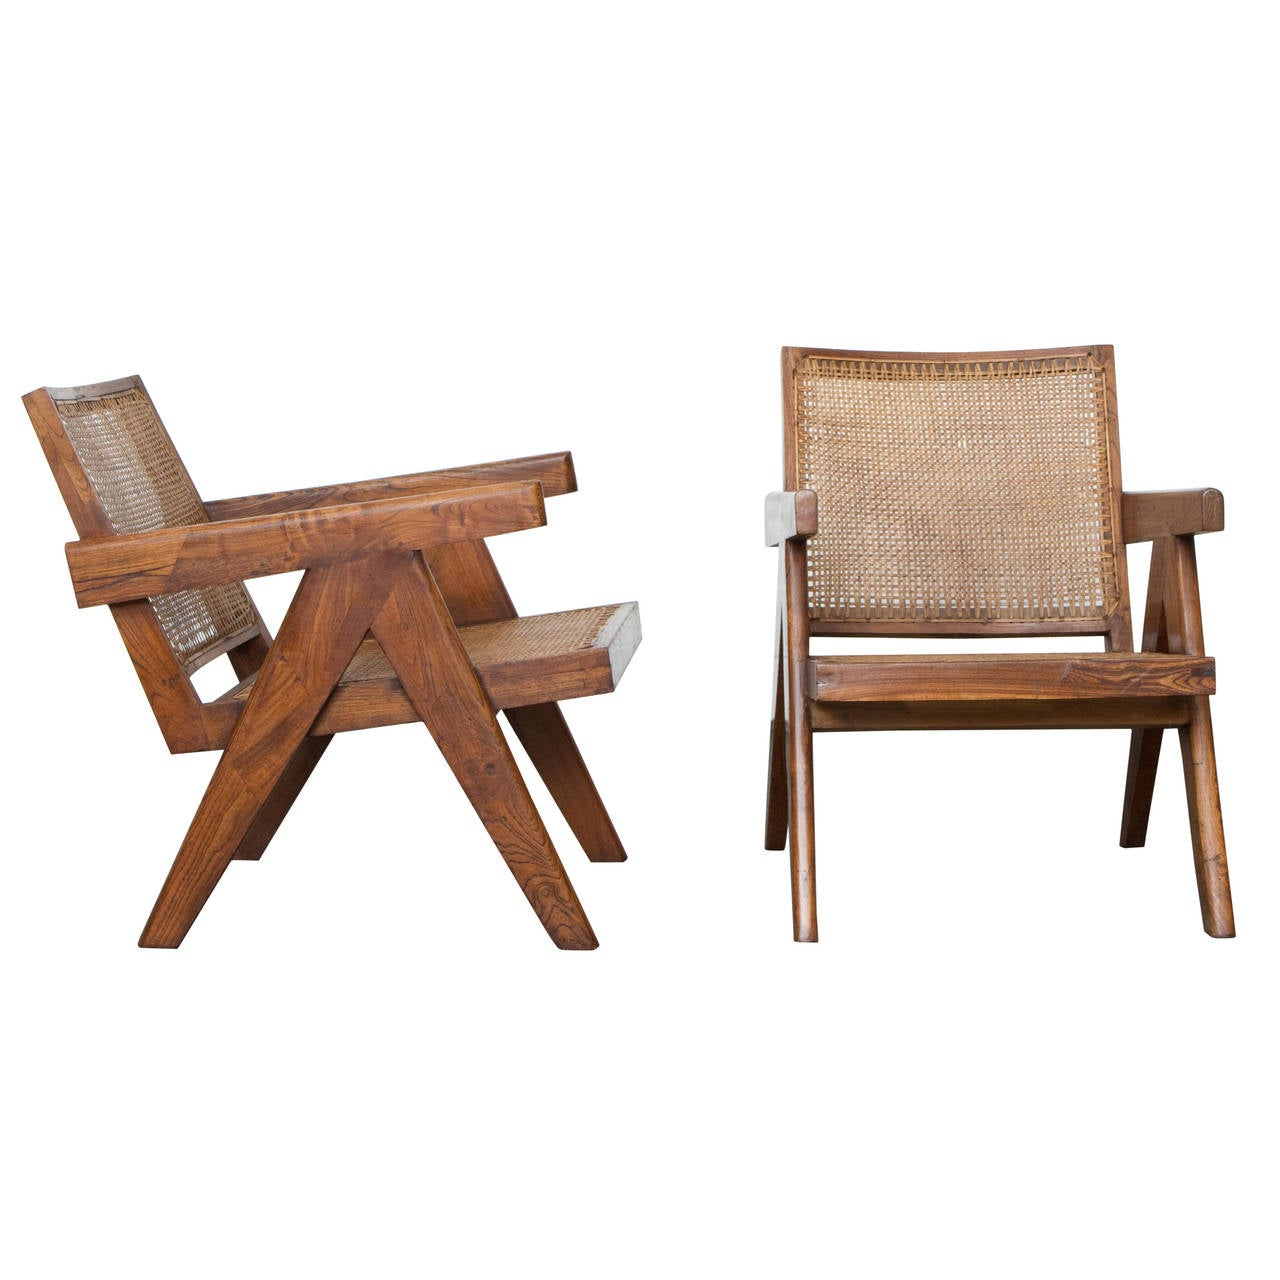 Pierre Jeanneret Pair of Lounge Chairs, circa 1955